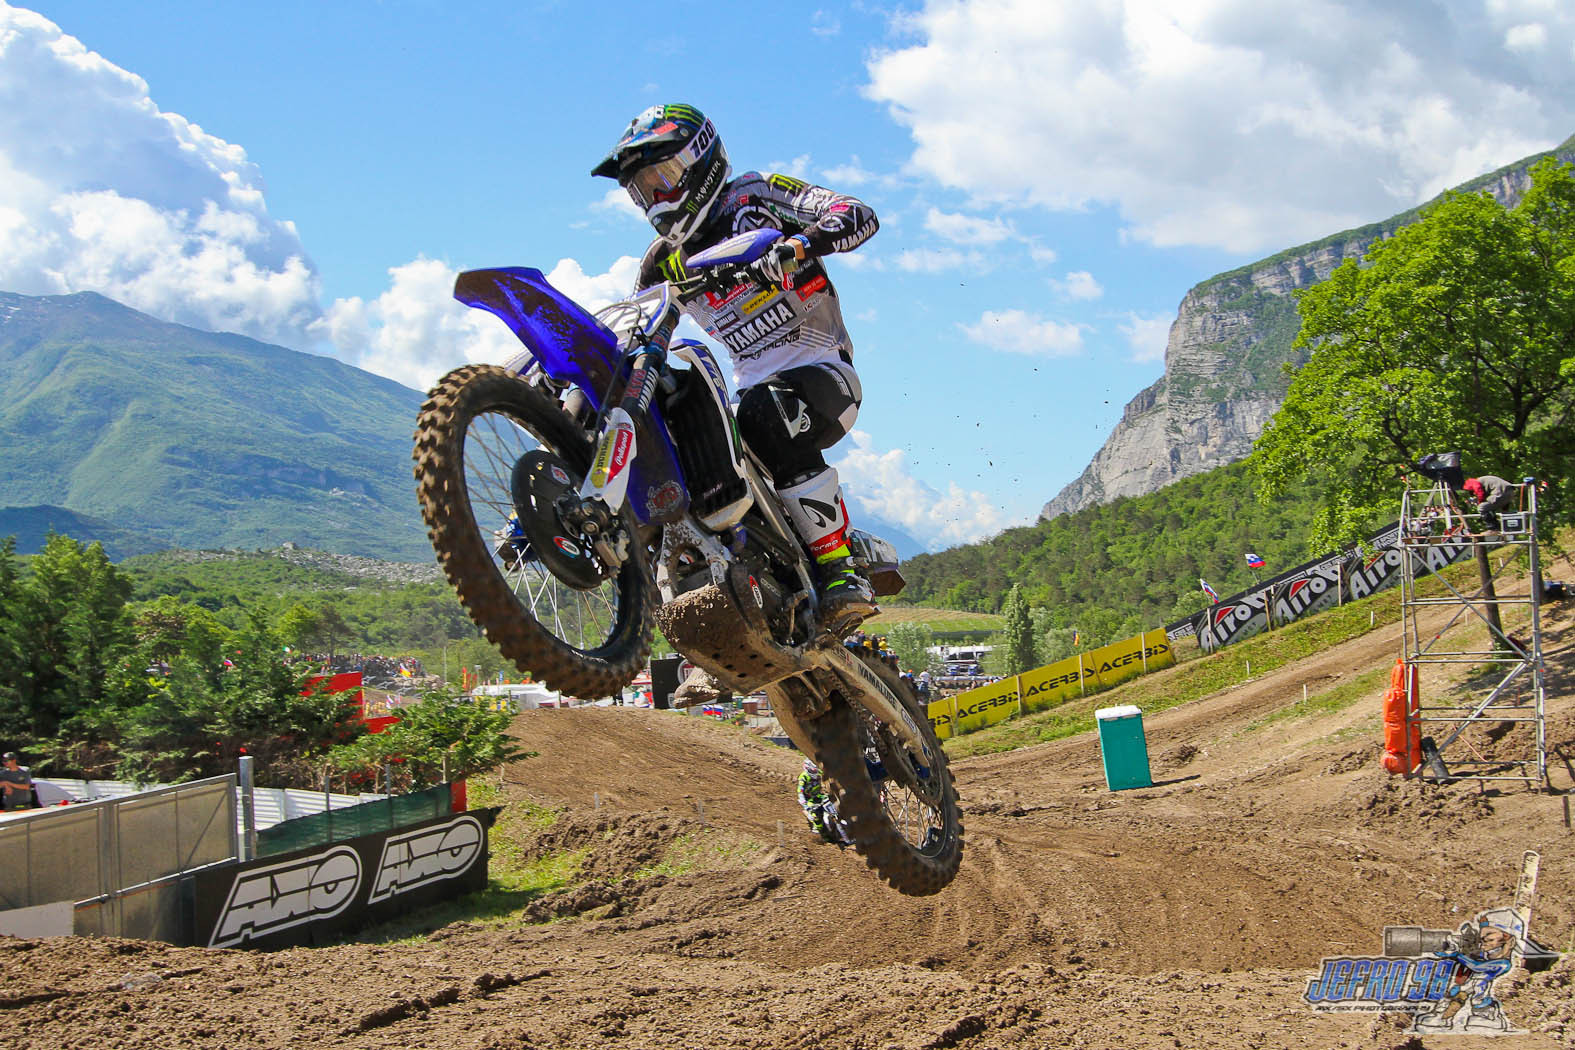 Brent van Doninck - Photo Gallery: MXGP of Trentino, Italy - Motocross Pictures - Vital MX